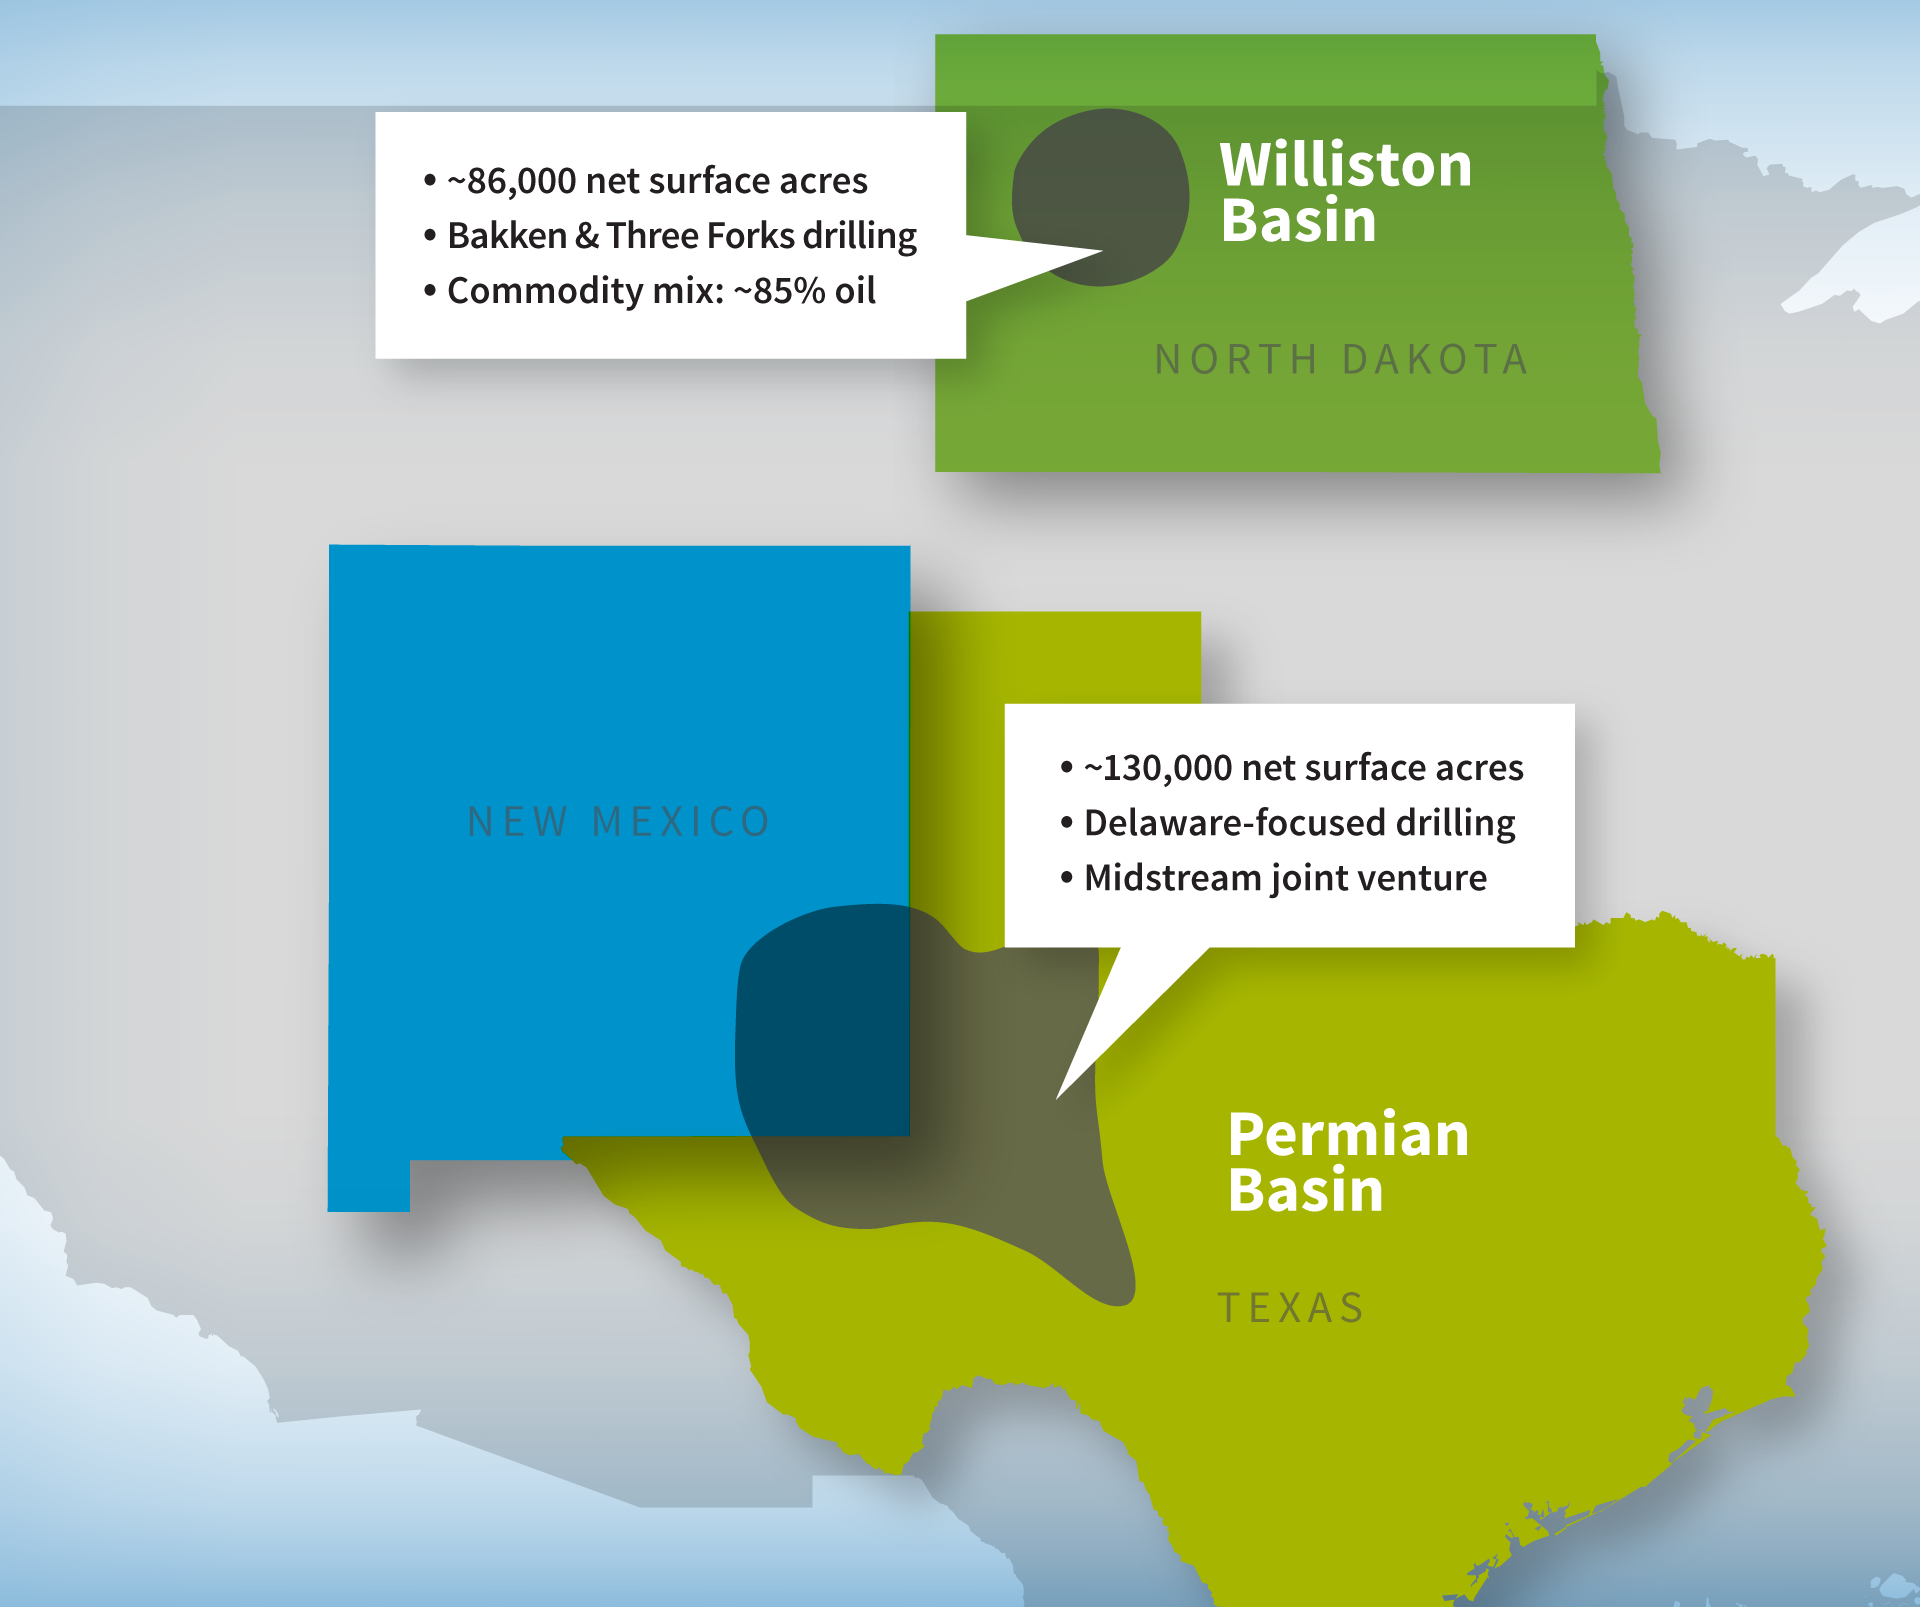 WPX has 100,000 net acres in the core of the Permian's Delaware Basin. The majority of this land is located in Loving County, Texas, and Eddy County, N.M. These assets have existing production from 10 of 13 prospective benches in the Delaware play.